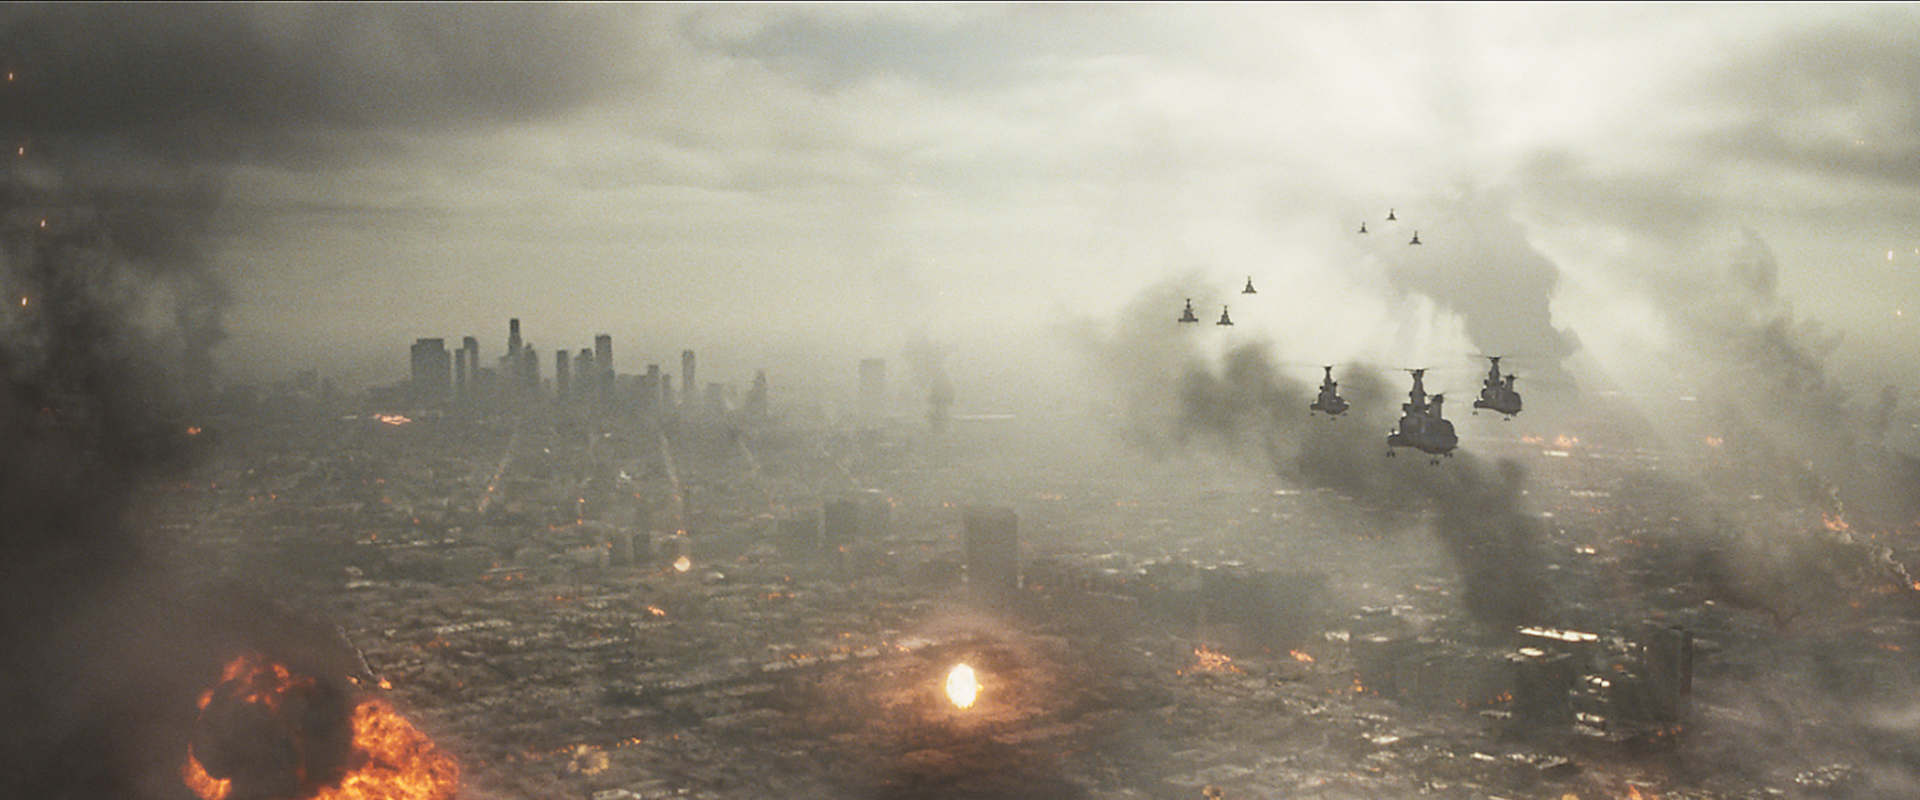 Battle Los Angeles background 2